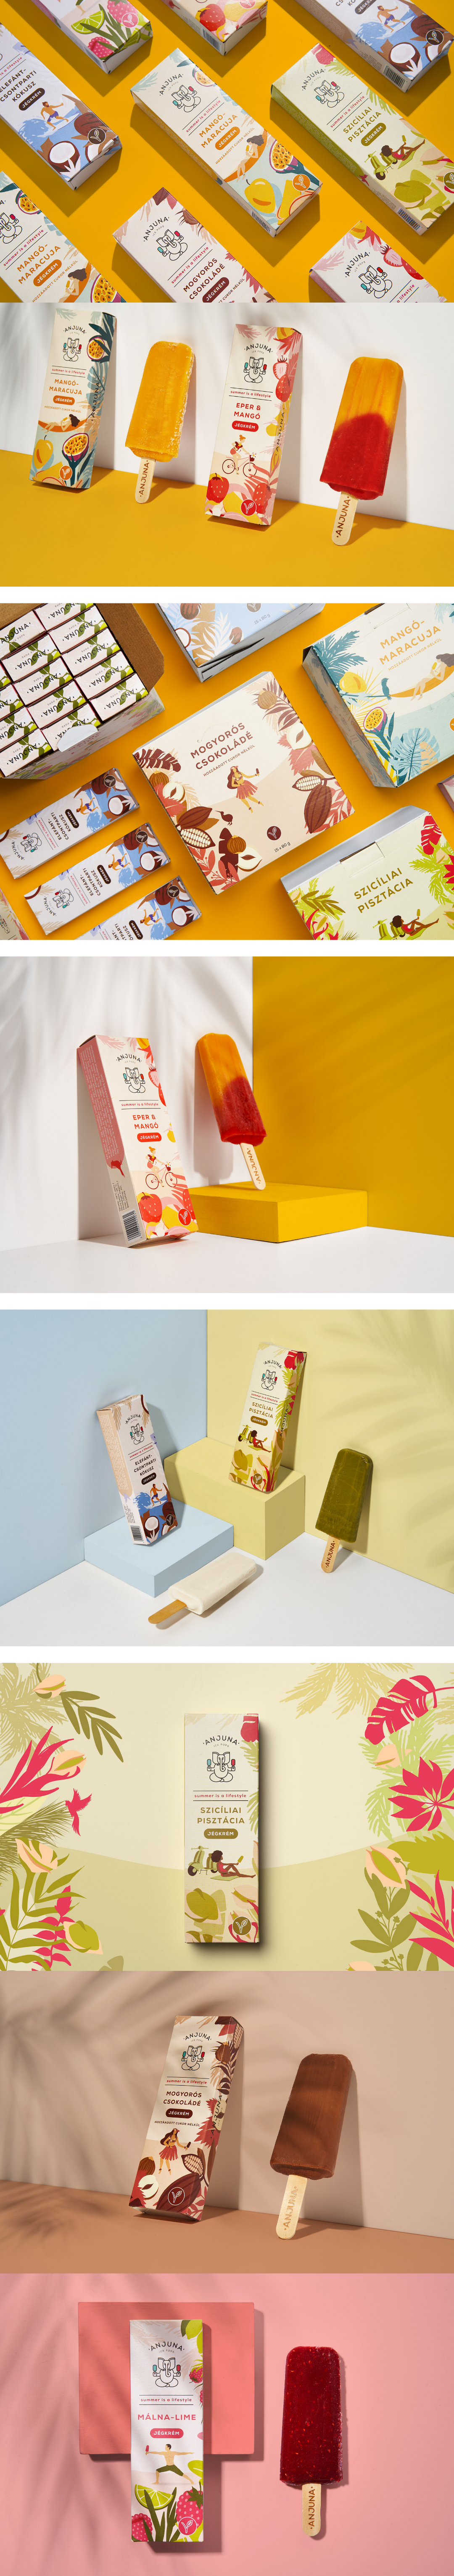 Packaging,Graphic Design,Illustration